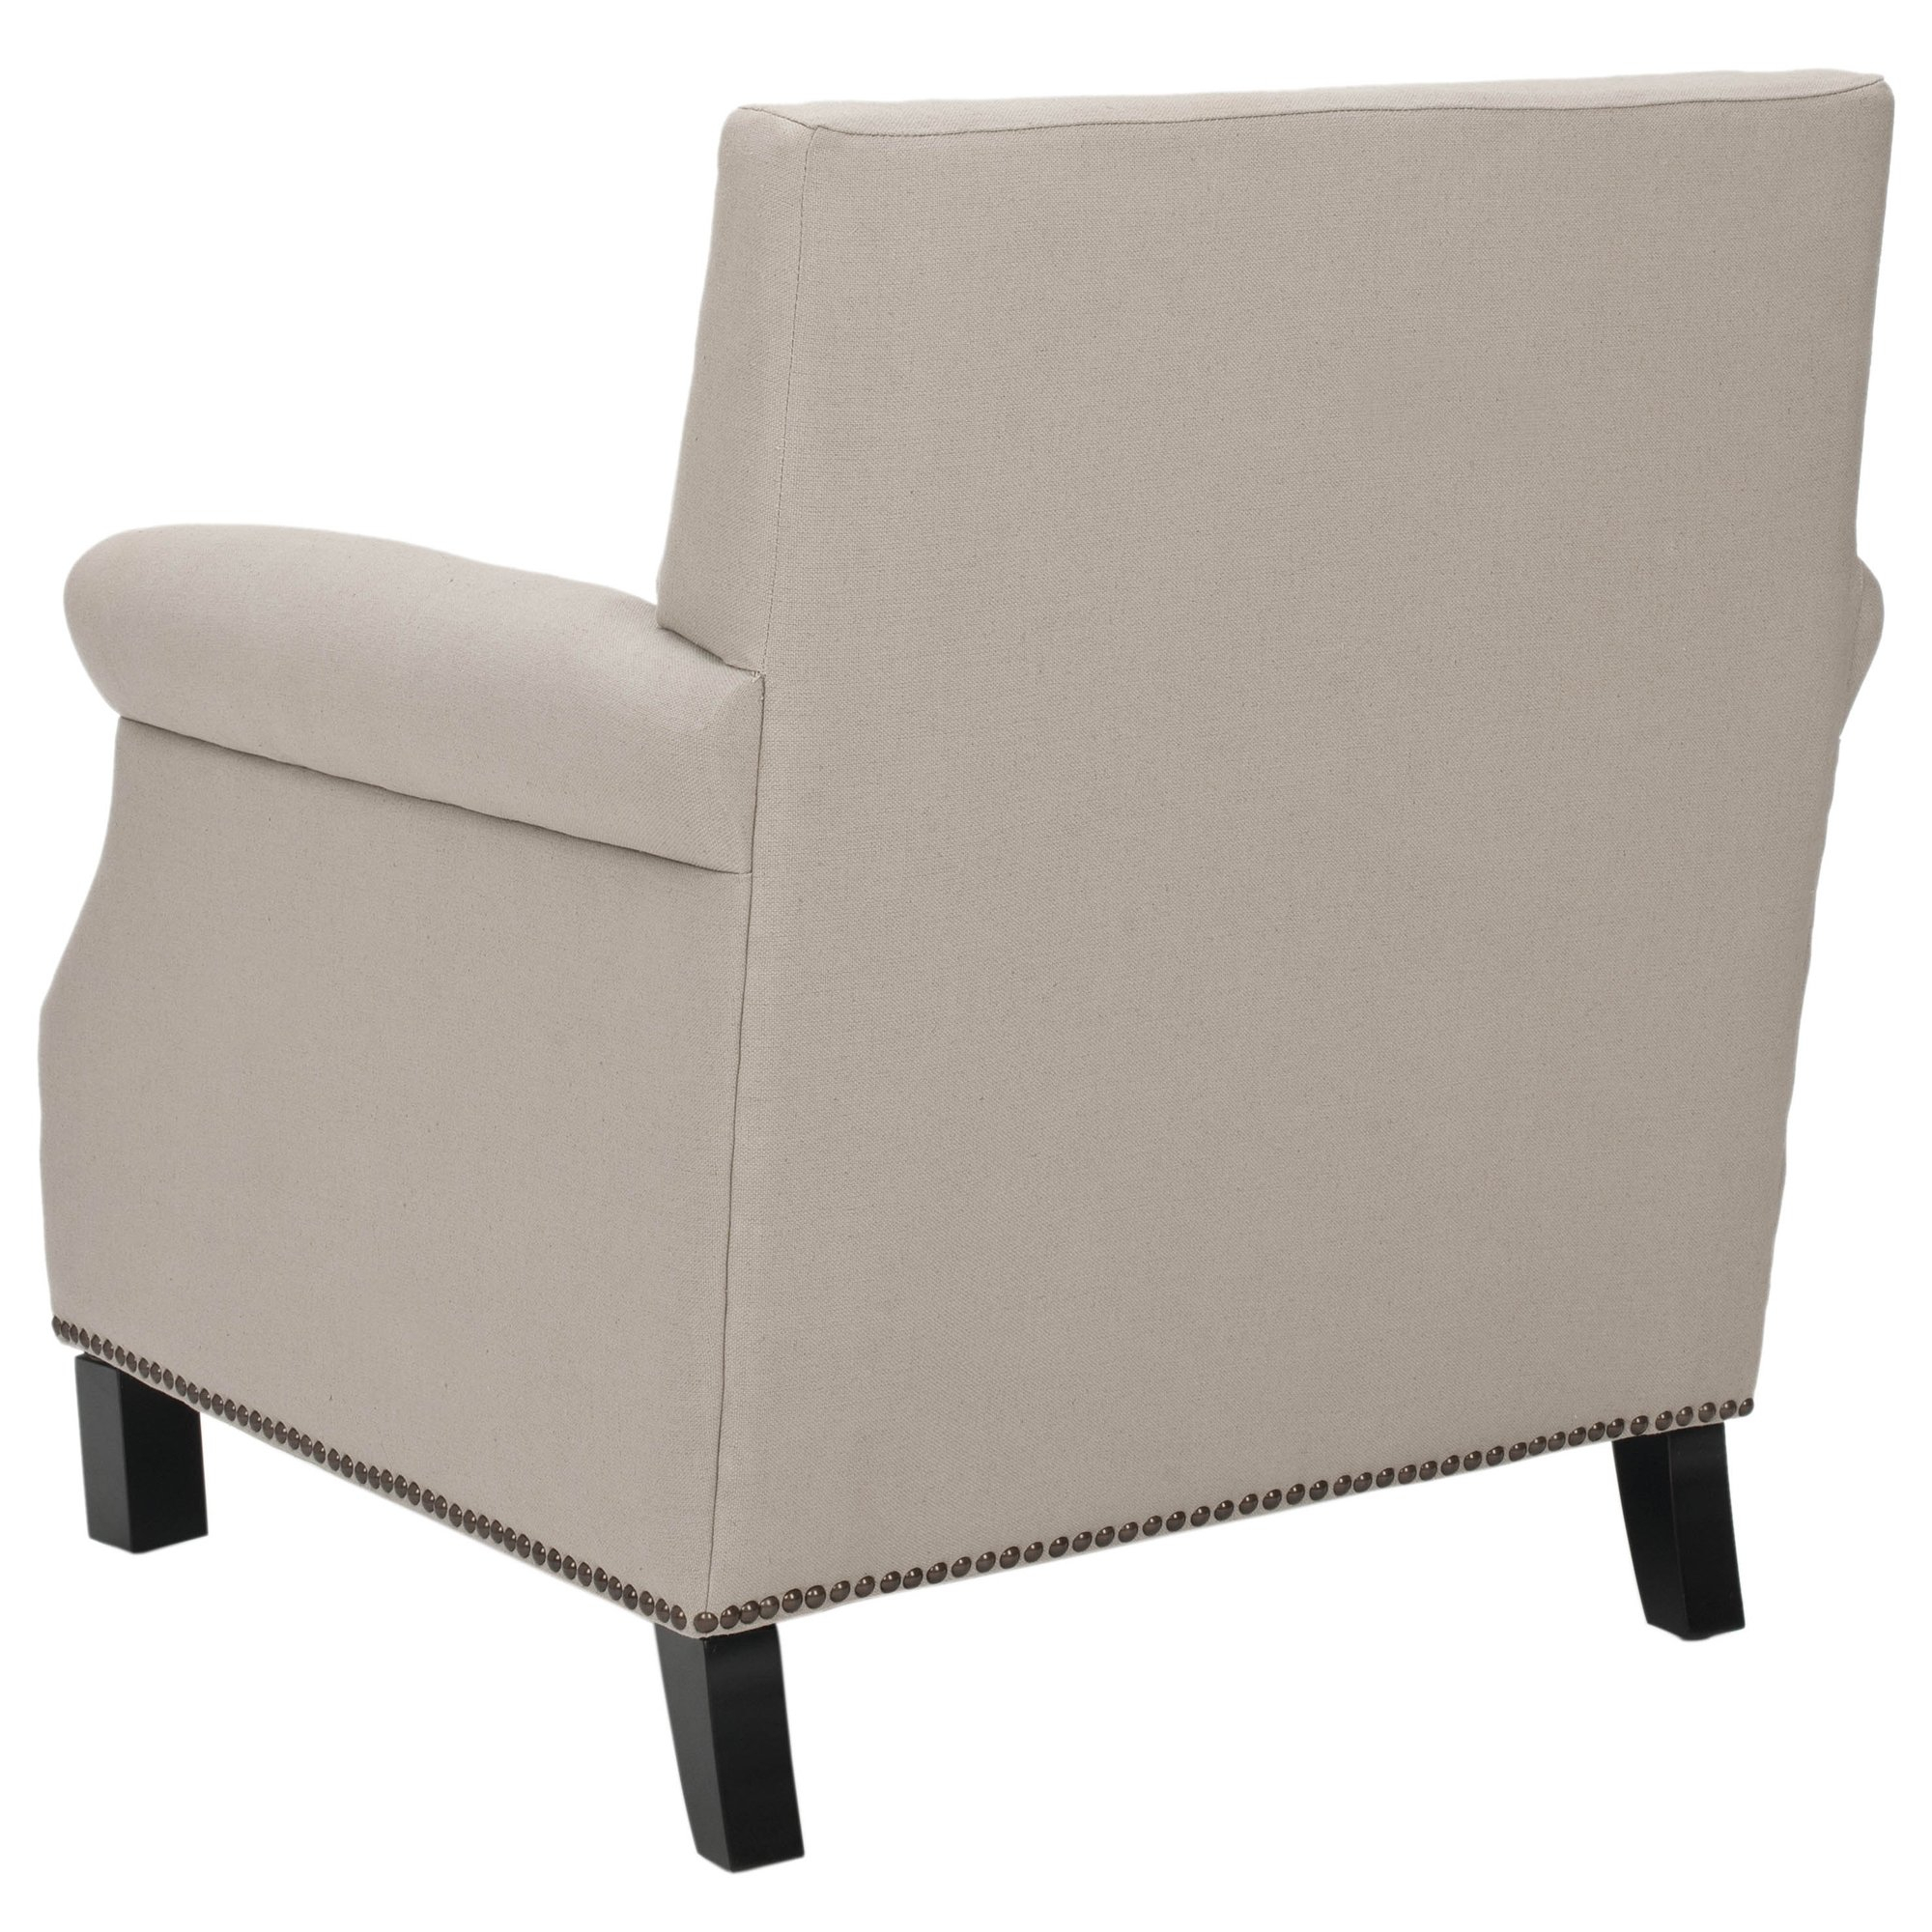 Safavieh Mercer Collection Charles Beige Linen Club Chair Furniture Throughout Mansfield Beige Linen Sofa Chairs (View 9 of 25)